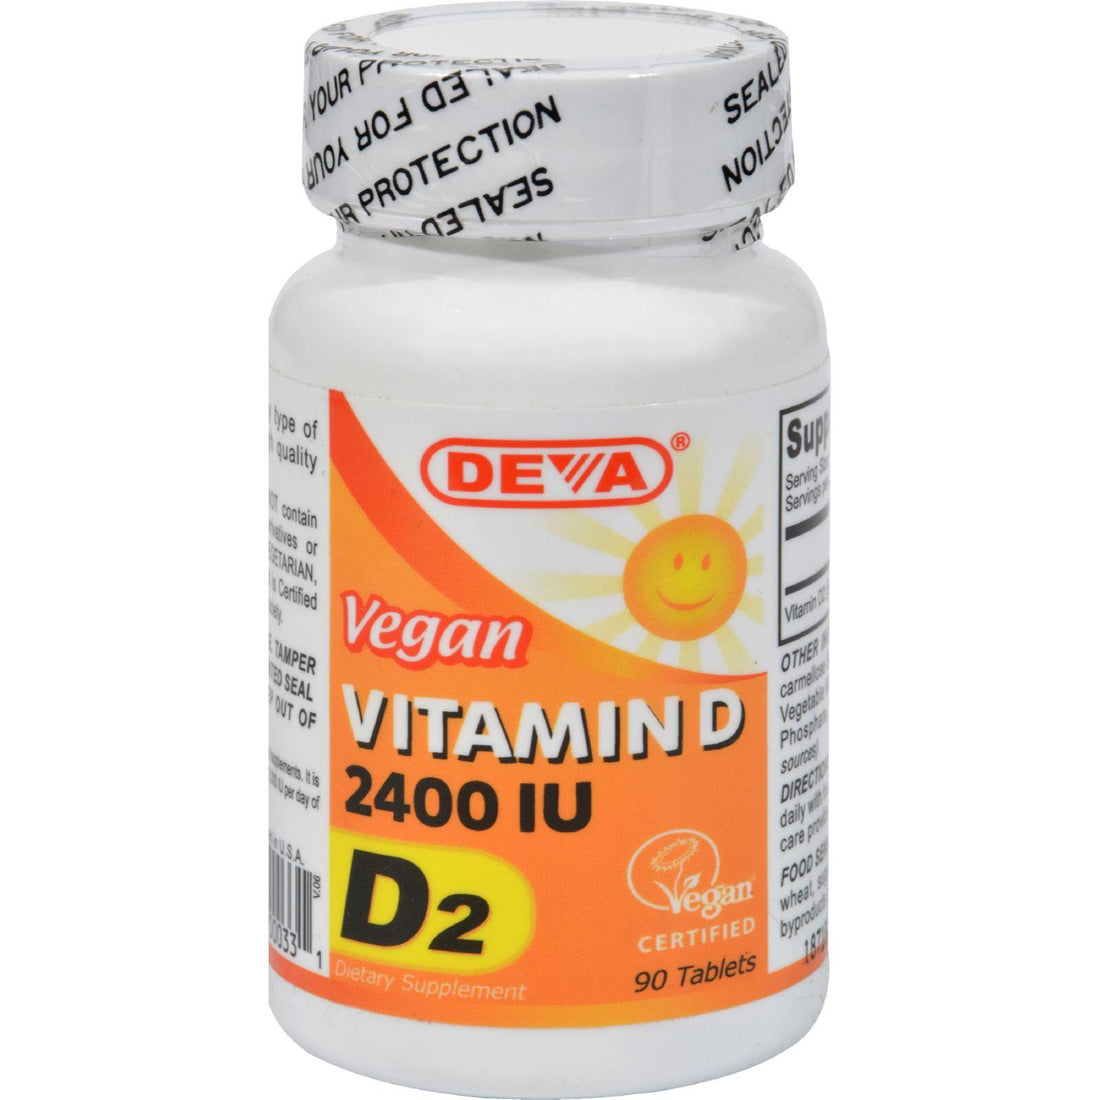 Mother Mantis: Deva Vegan Vitamin D - 2400 Iu - 90 Tablets Deva Vegan Vitamins